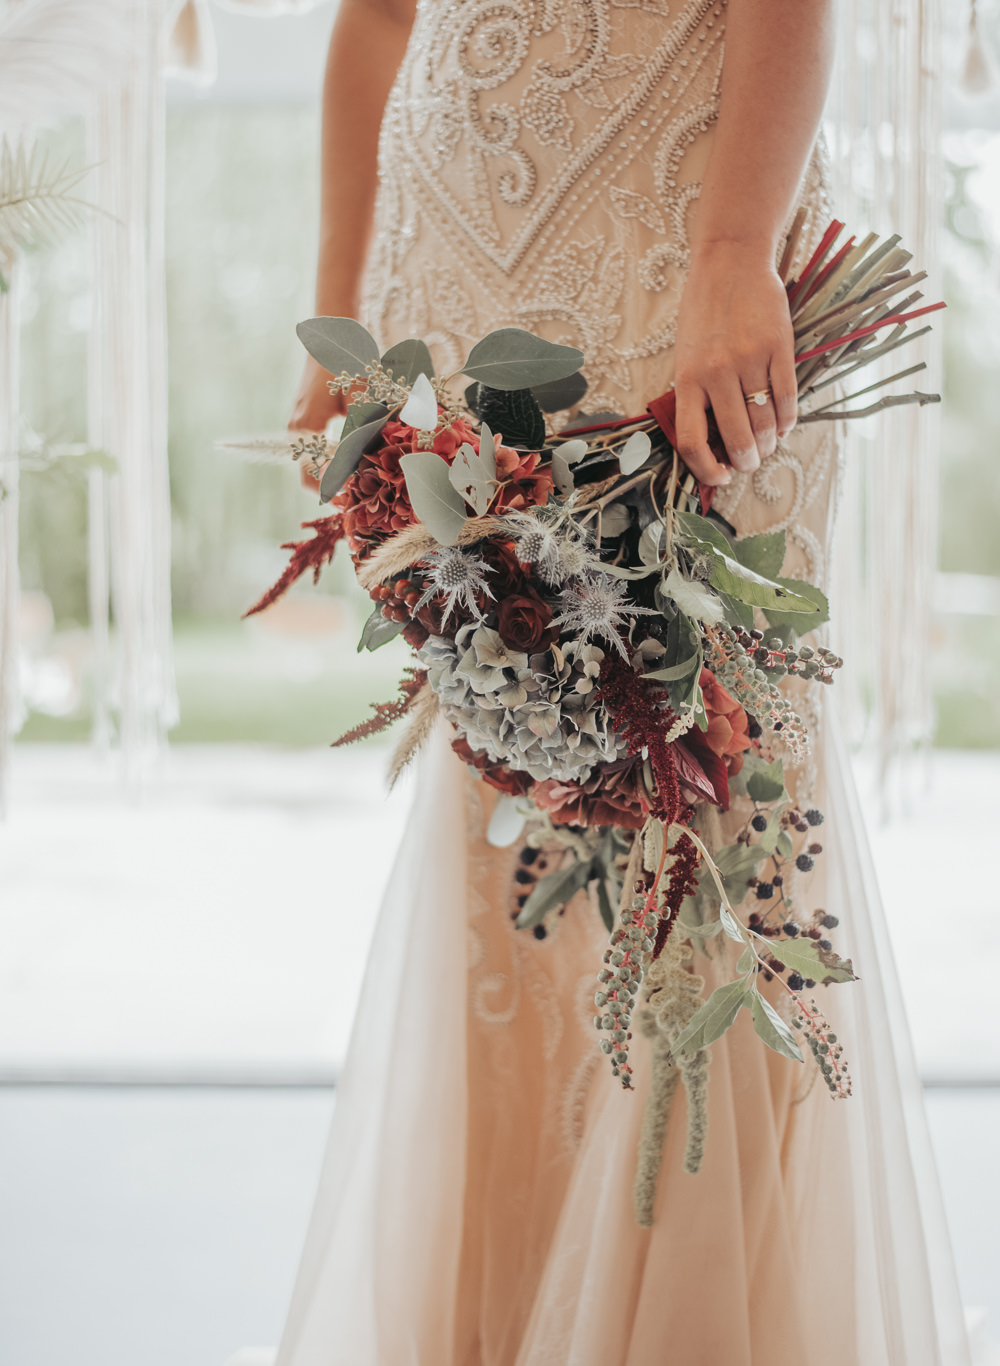 Bouquet Flowers Bride Bridal Hydrangea Burgundy Thistle Eco Friendly Wedding Inspiration Sarah Jayne Photography